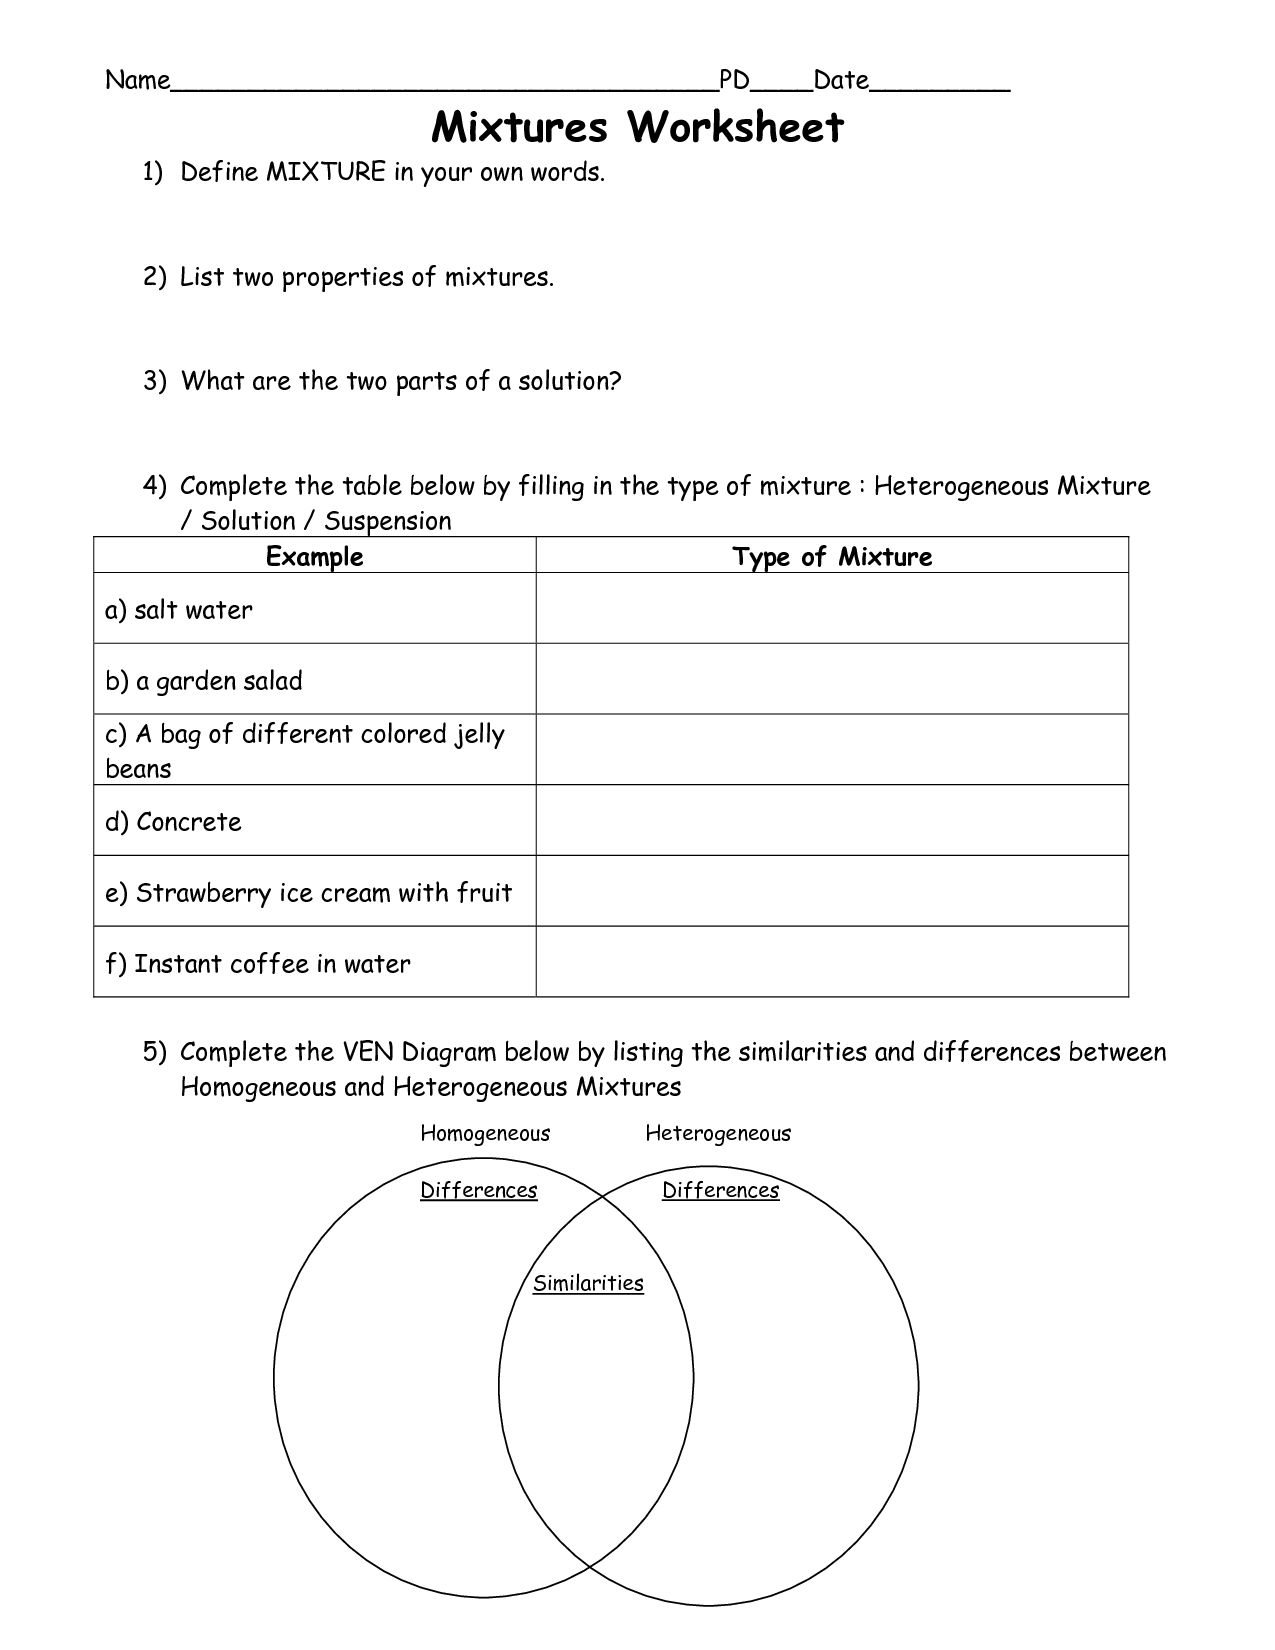 Worksheets Mixtures And Solutions Worksheets types of mixtures worksheet sharebrowse collection sharebrowse